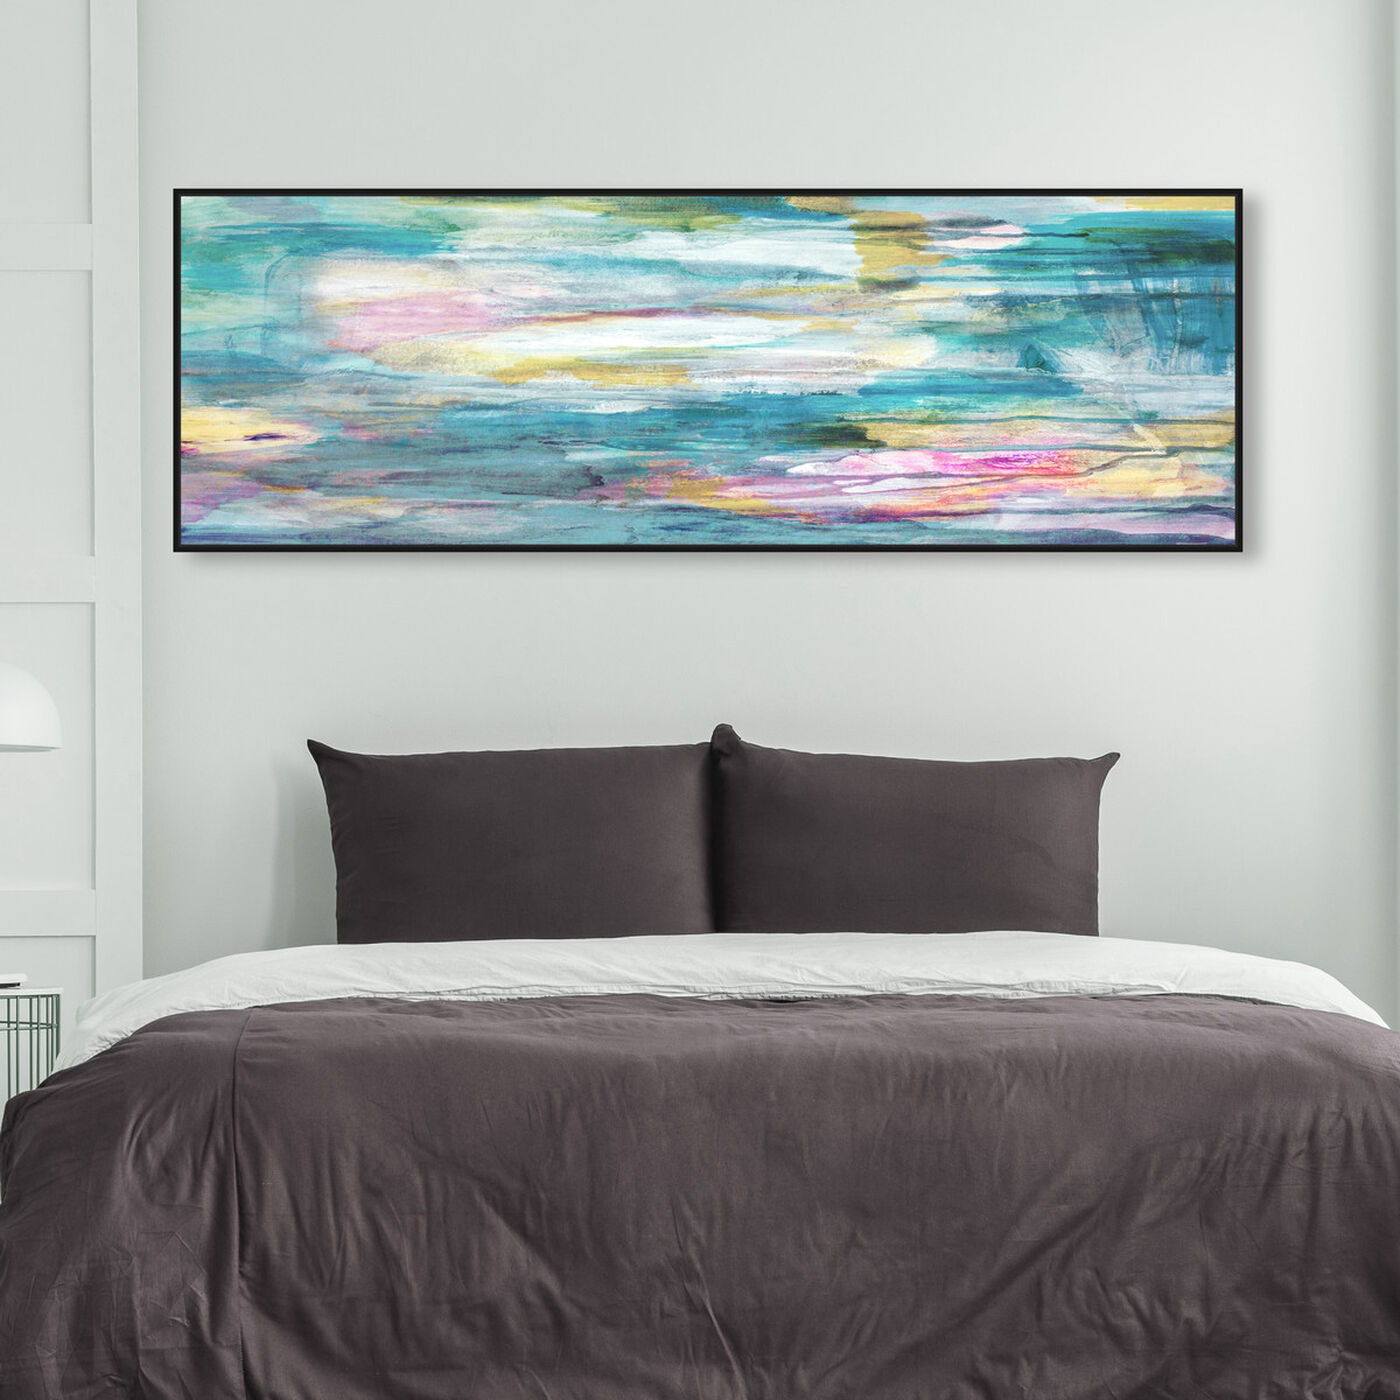 Hanging view of The Calm Love featuring abstract and paint art.